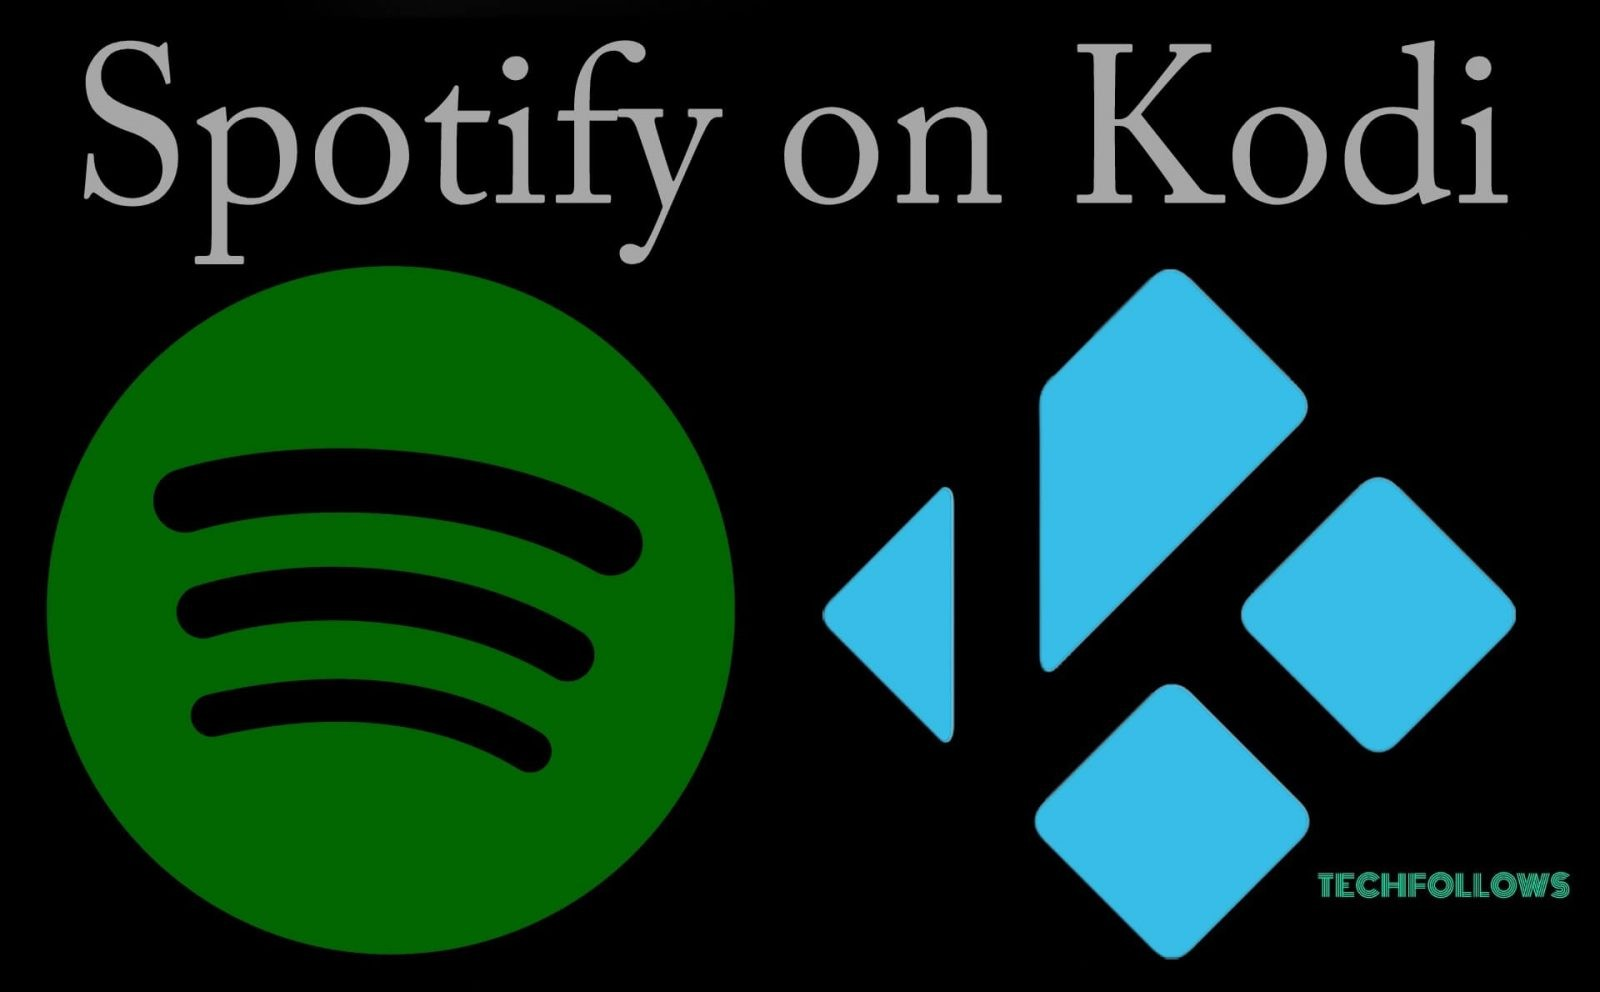 Spotify on Kodi - How to install Kodi Spotify Addon? 2019